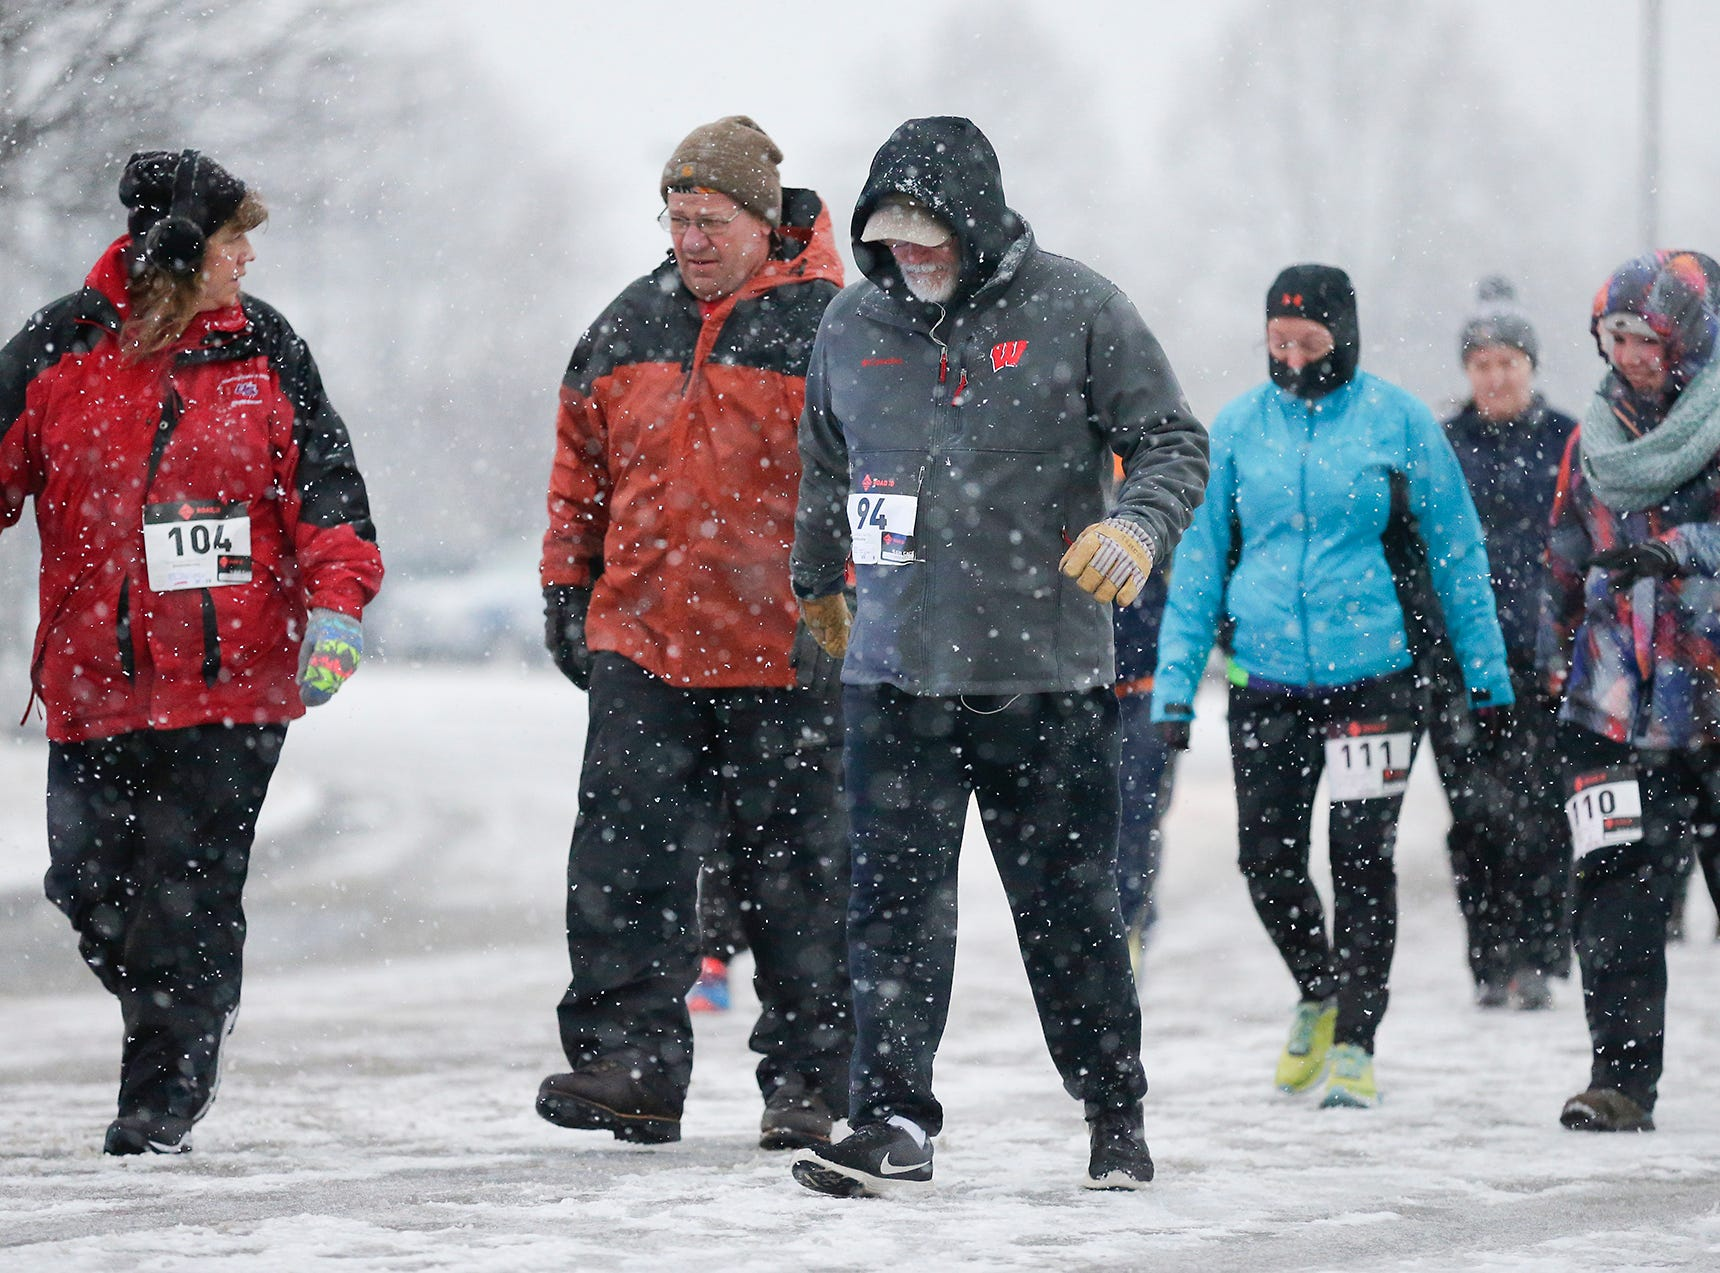 Dozens of runners start the Chilly Chili 5k run/walk Saturday, December 31, 2018 at Marian College in Fond du Lac, Wisconsin. Doug Raflik/USA TODAY NETWORK-Wisconsin